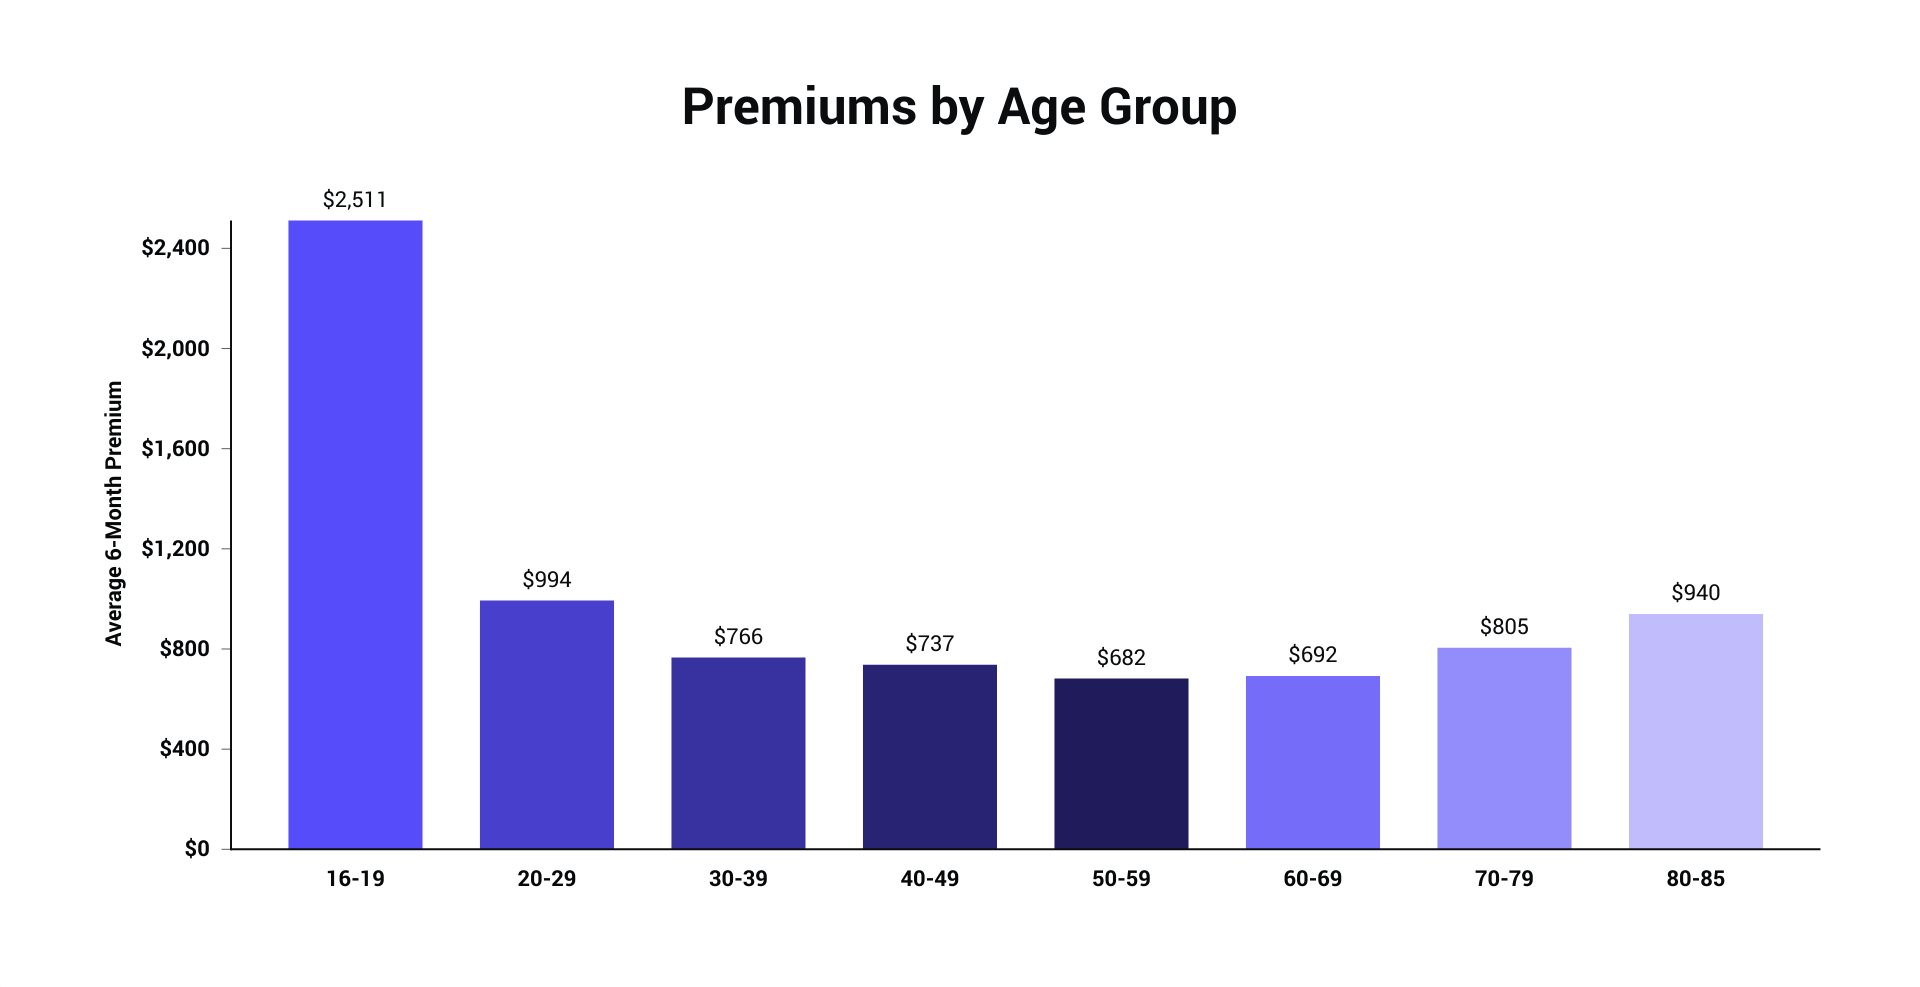 agegroups_averagepremiums.png